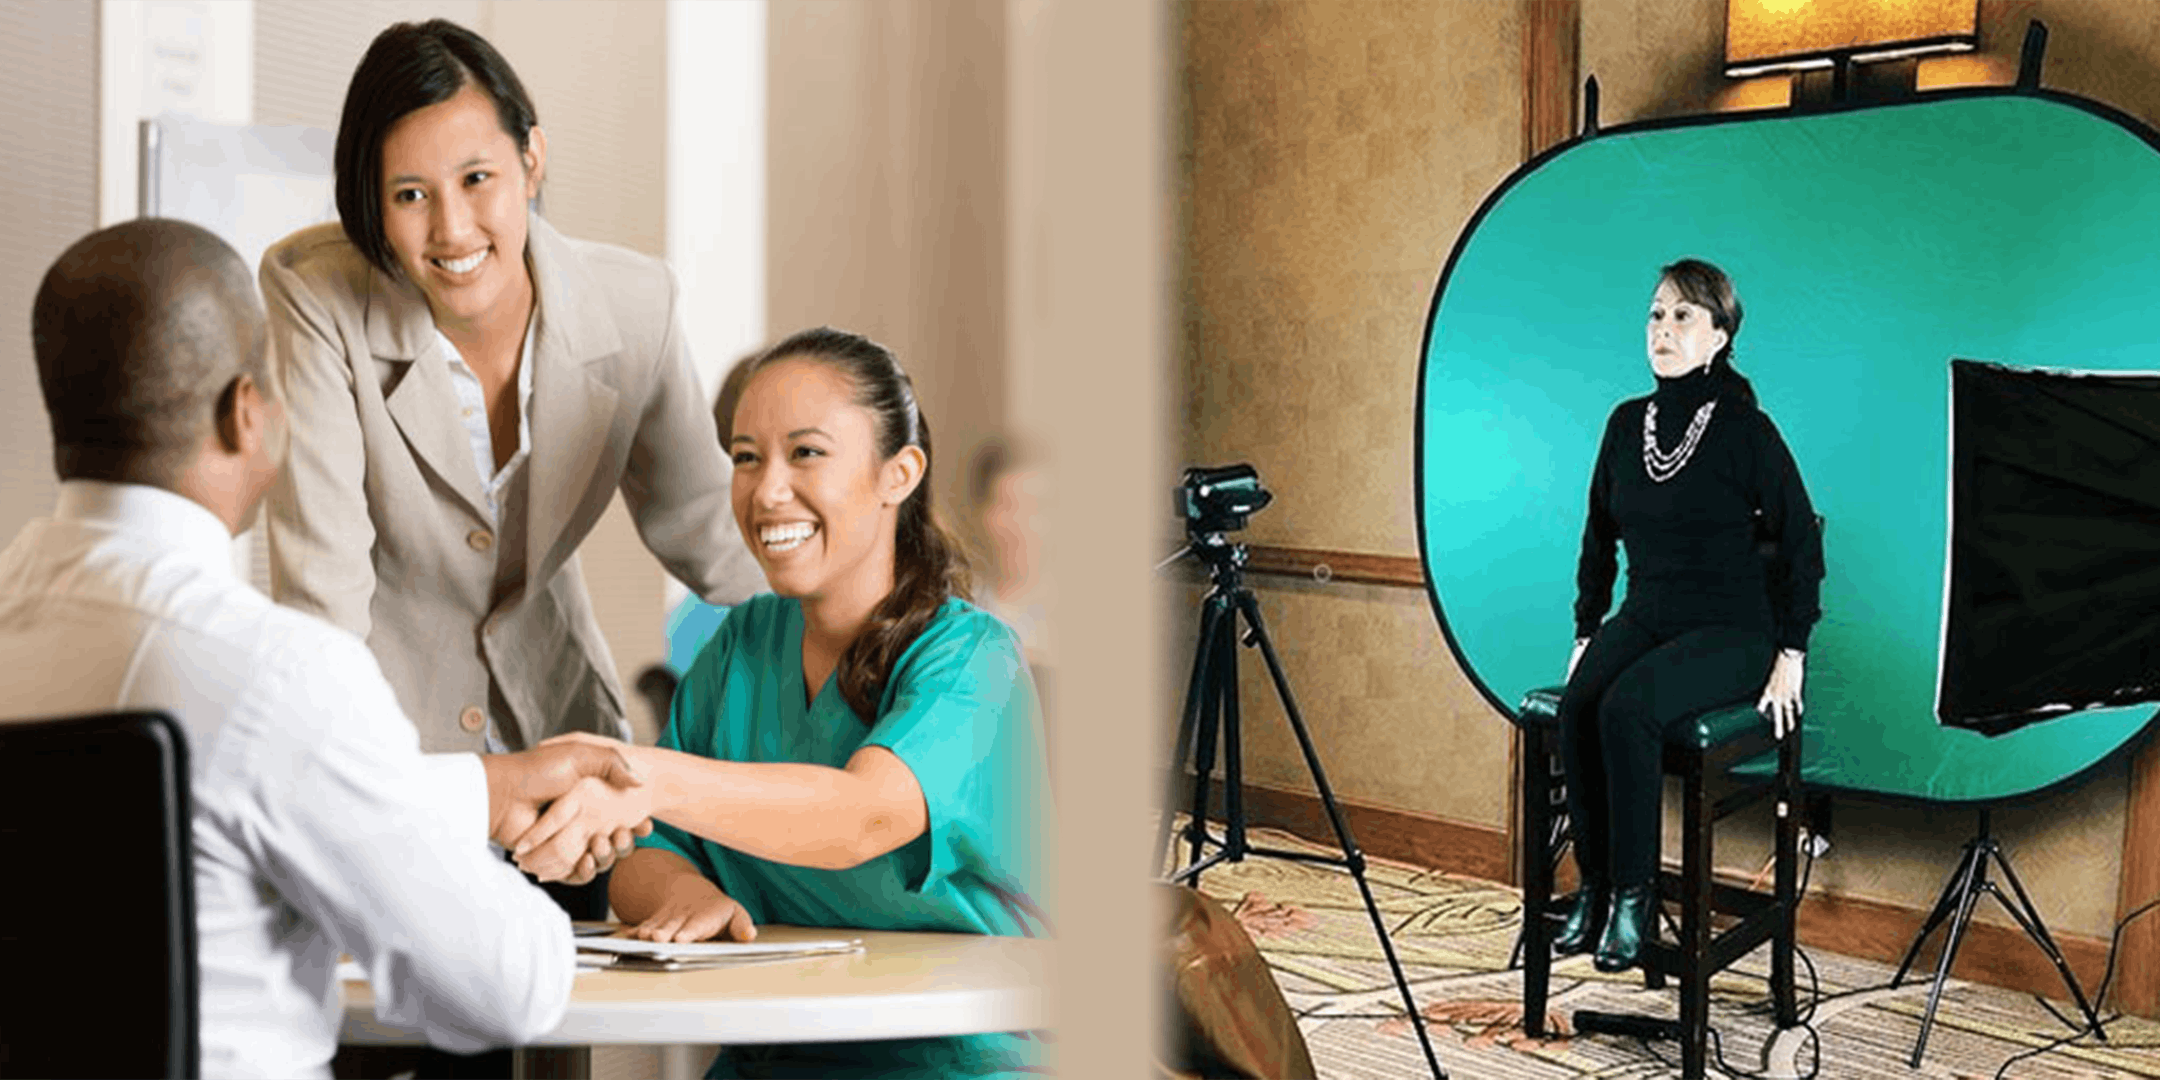 San Diego 2/20 CAREER CONNECT Profile & Video Resume Session